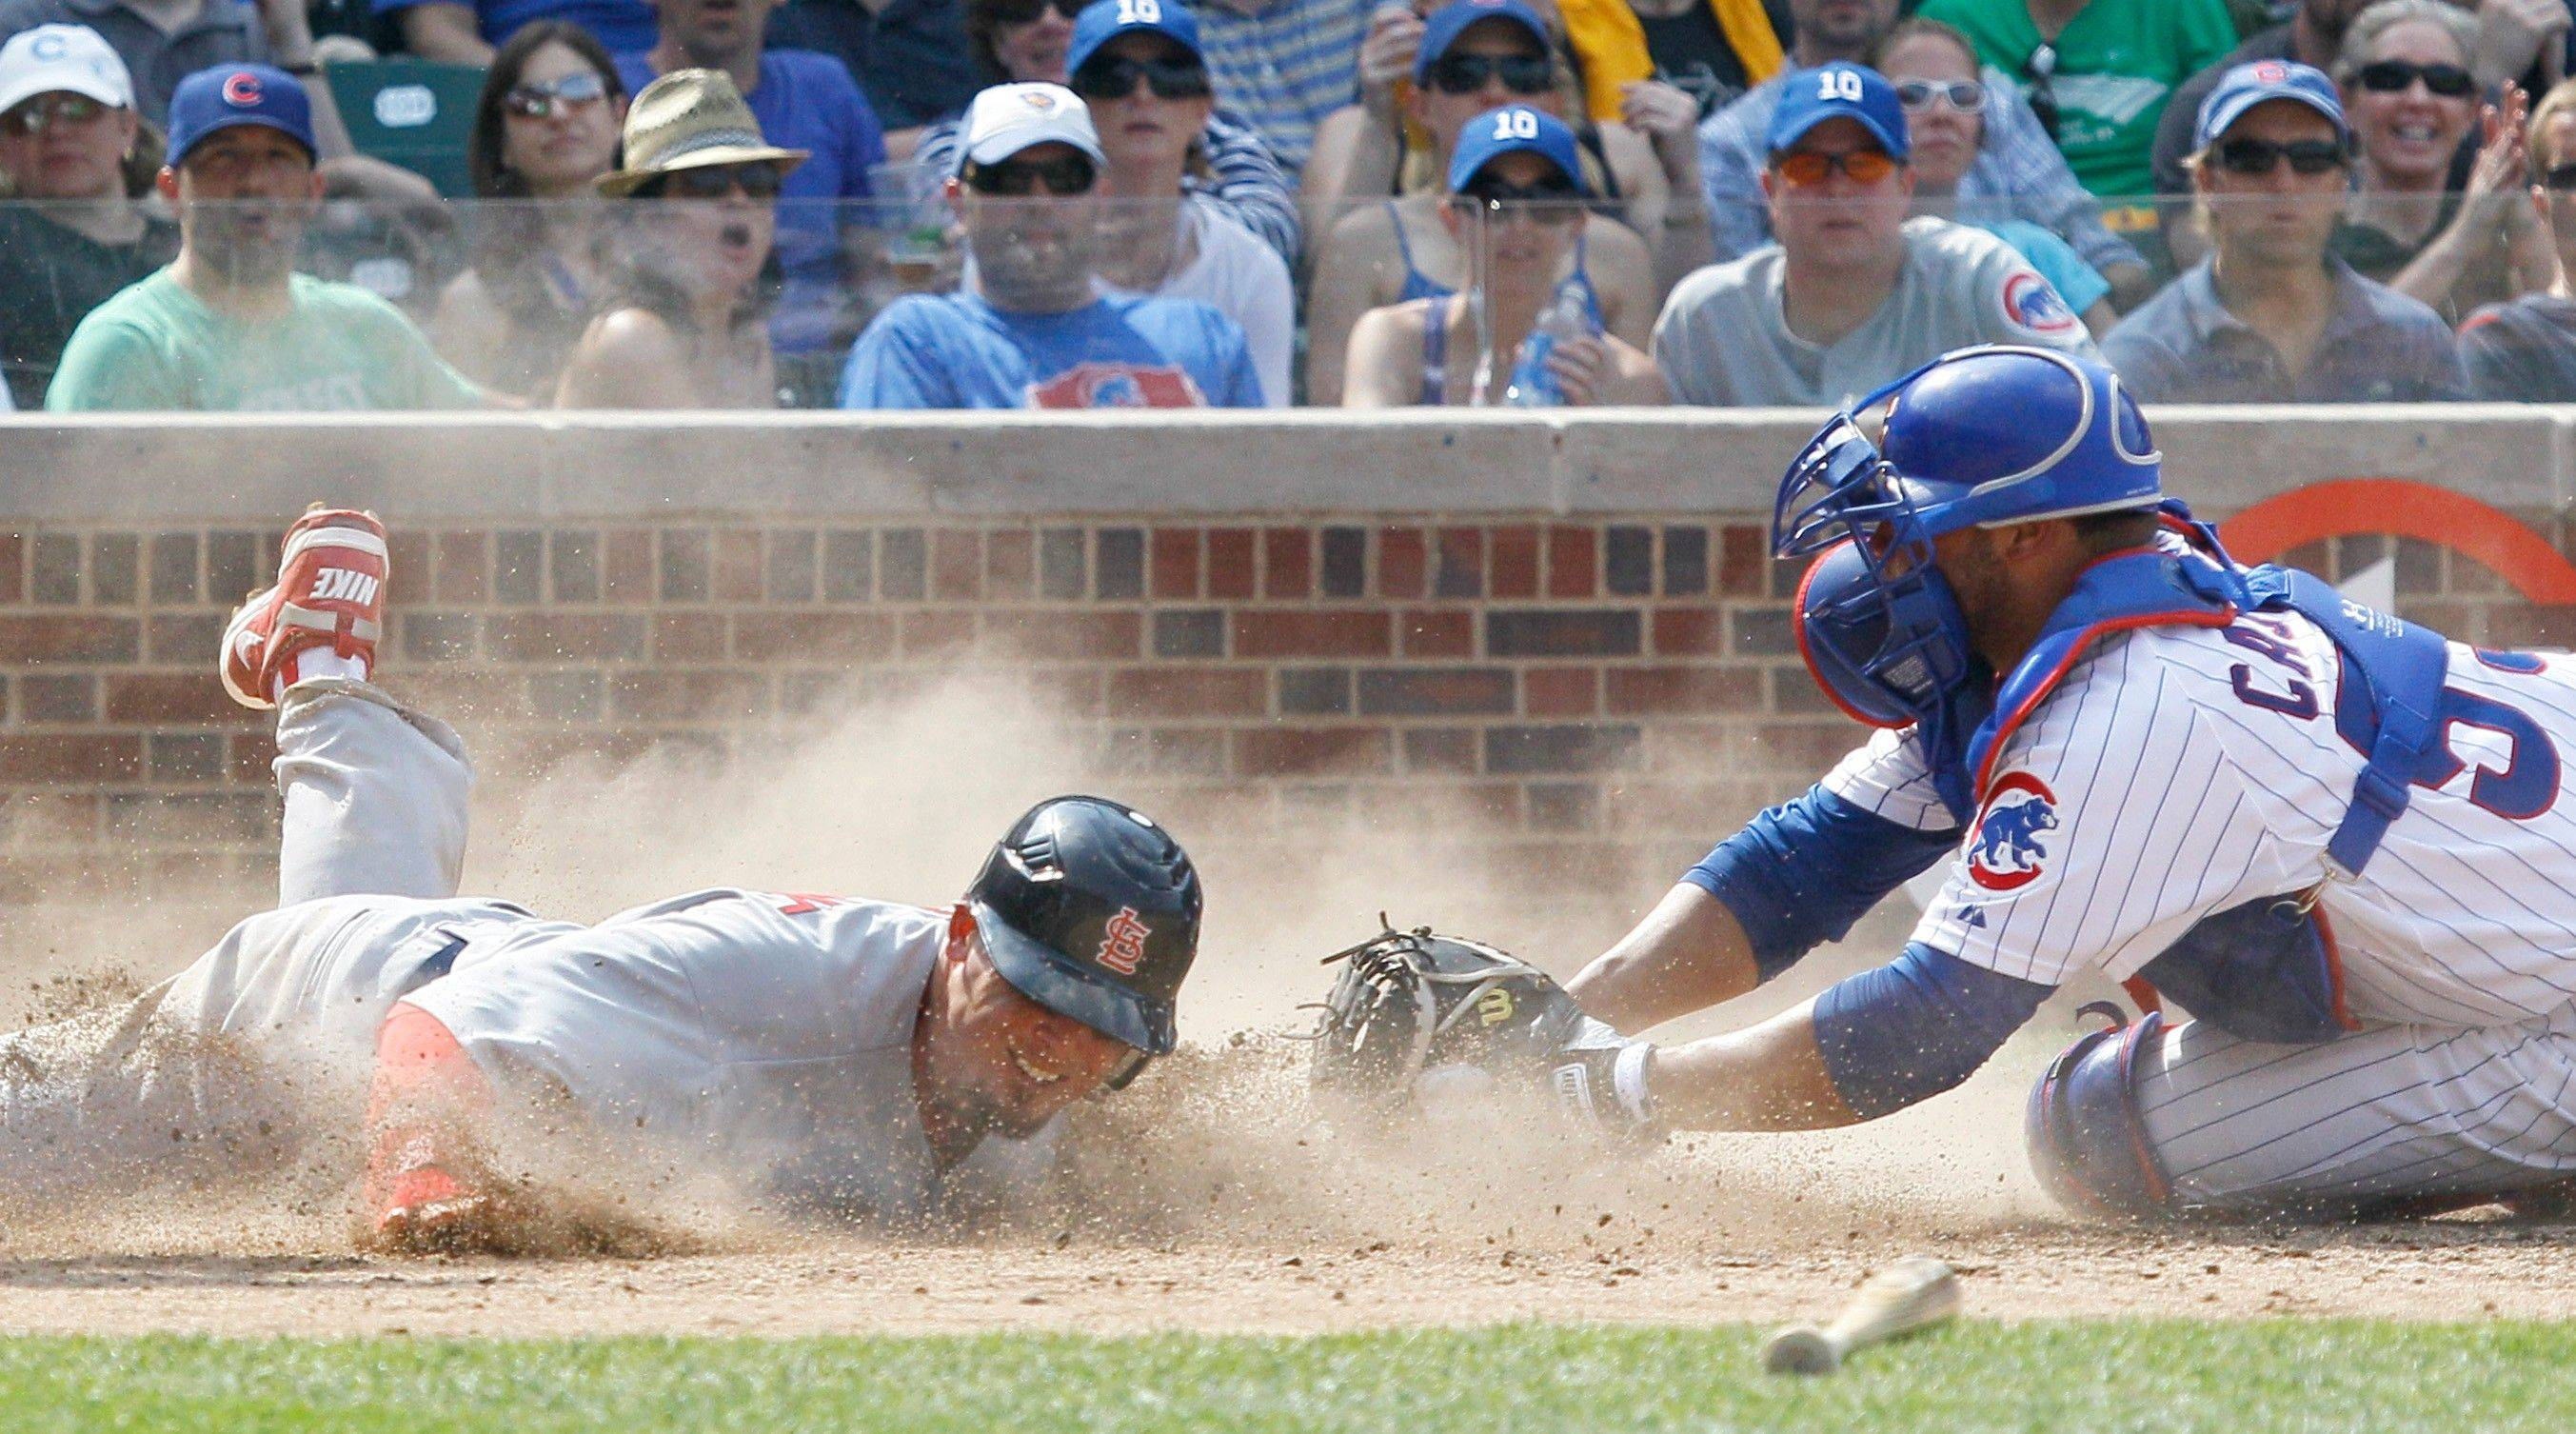 Tyler Greene, left, slides safely behind Welington Castillo to score on an RBI single by Jon Jay during the seventh inning of the Cardinals' victory over the Cubs on Thursday at Wrigley Field.